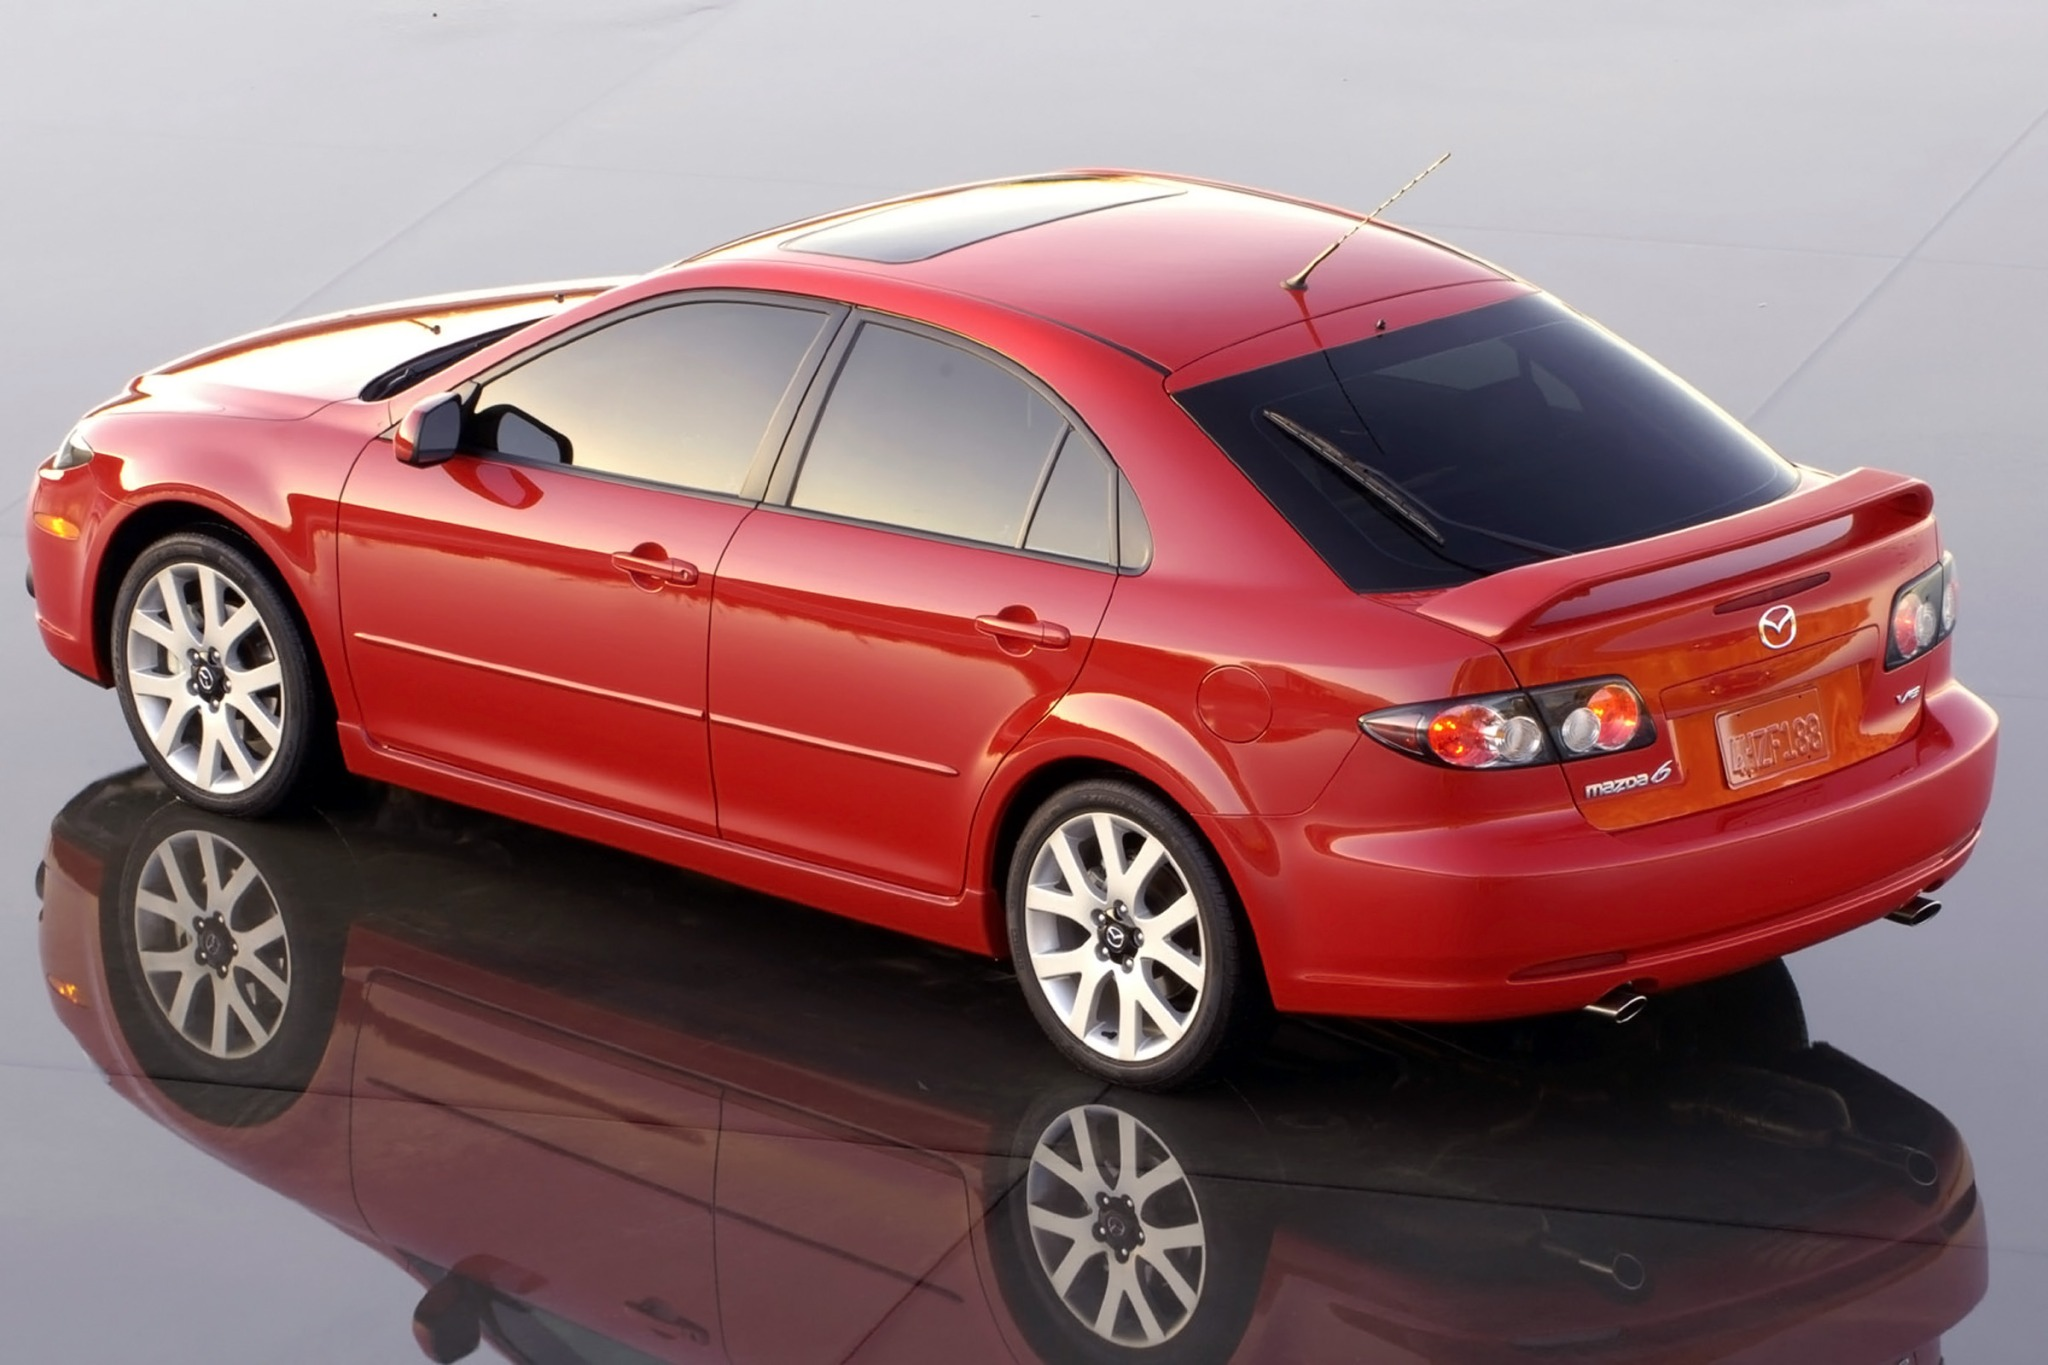 100 2005 mazda 6 owners manual mazda 626 gearbox oil change 2006 fixya 2007 mazda mazda6 information and photos zombiedrive fandeluxe Choice Image